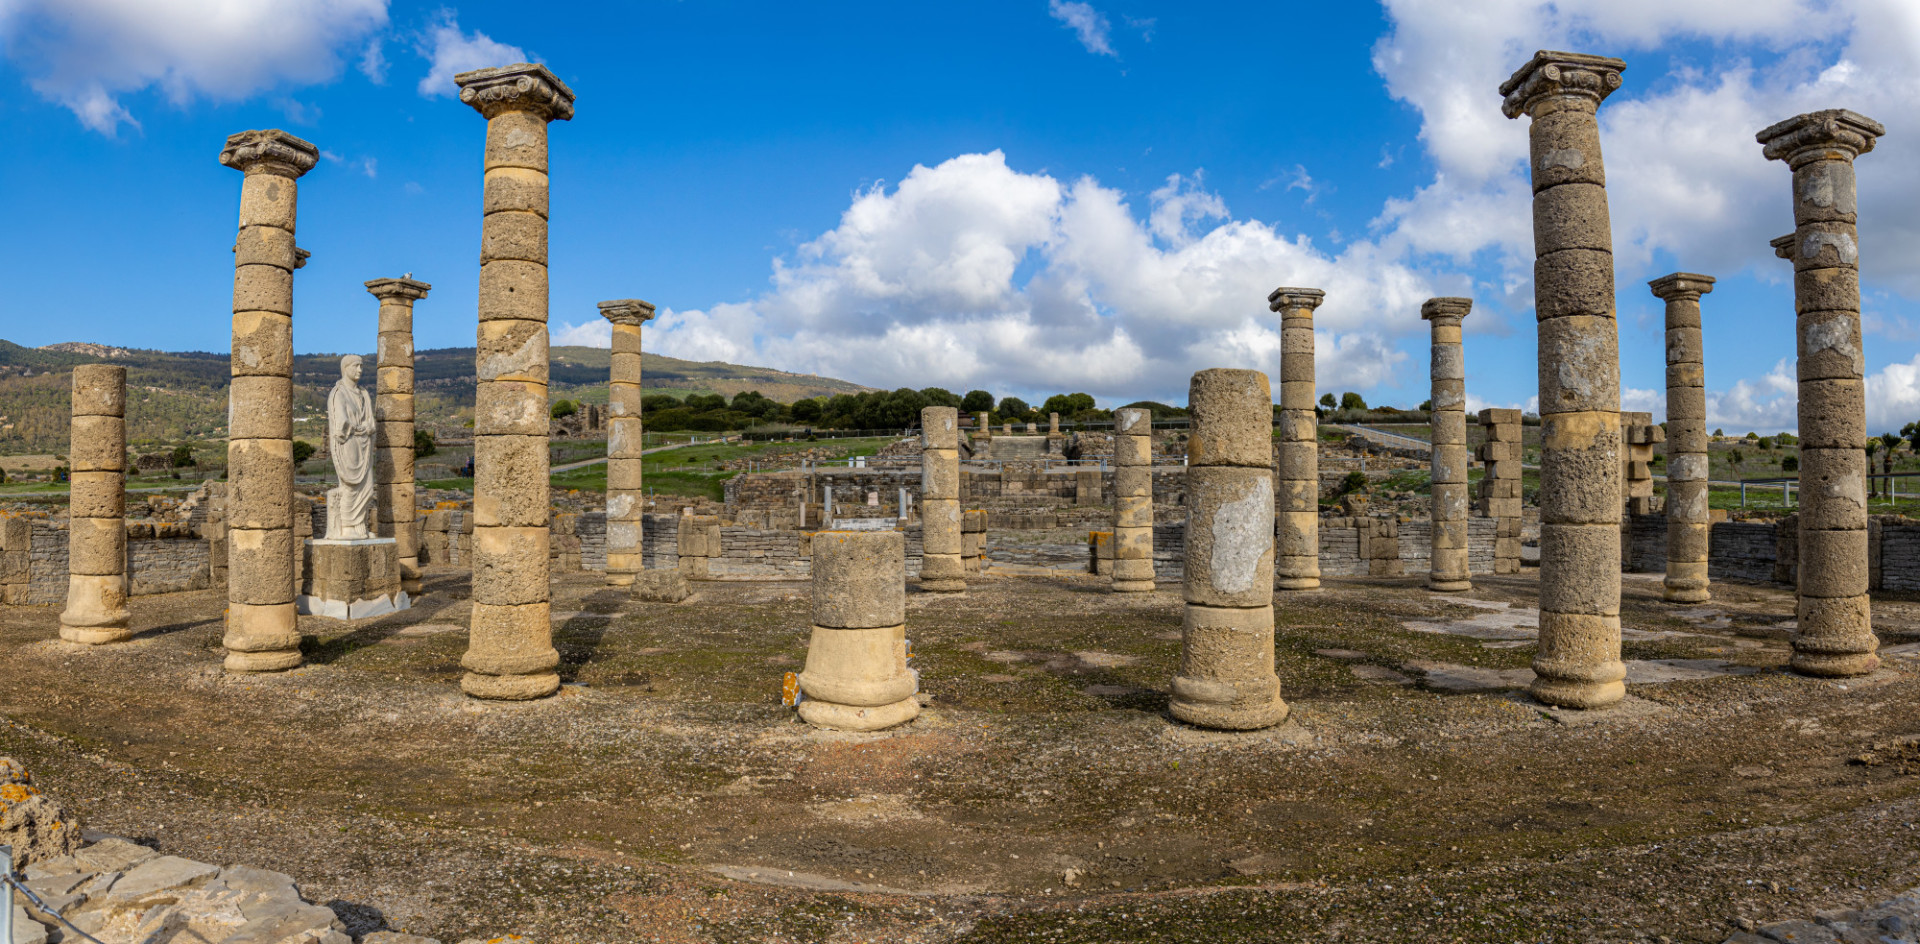 Ruins of a Roman city in Spain